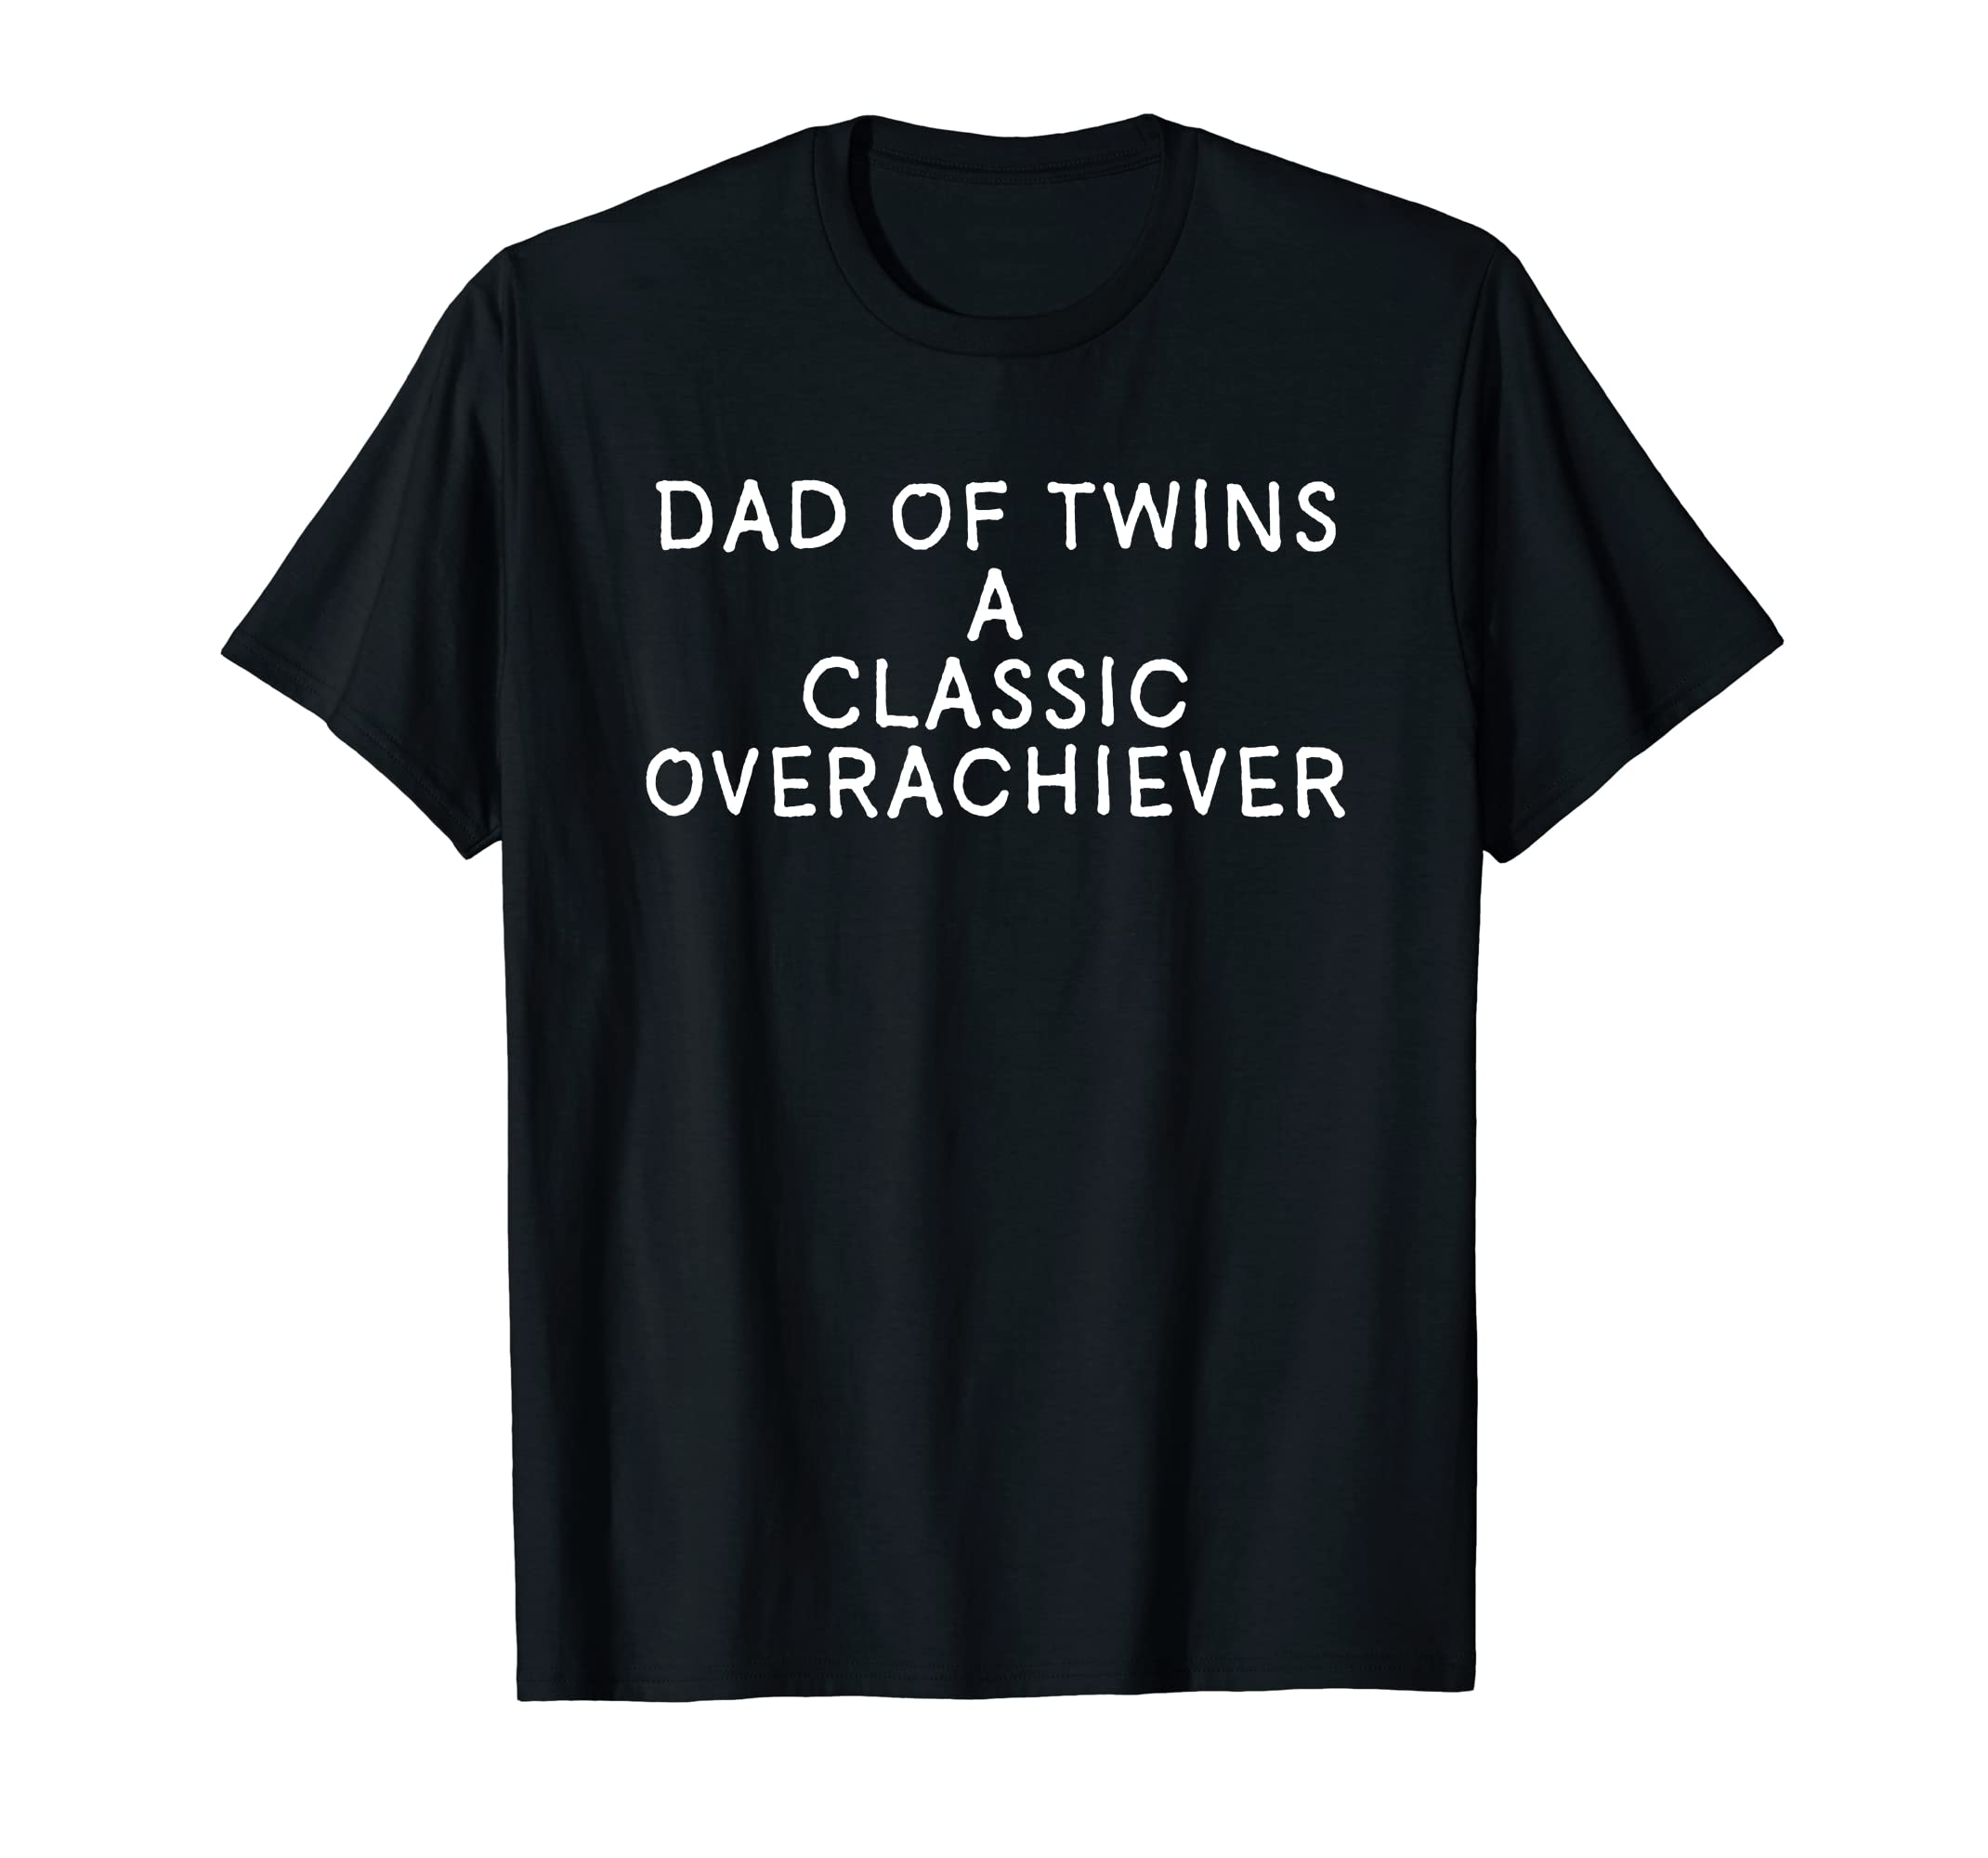 39b94172 Amazon.com: Mens Dad of Twins Shirt, Funny Twin Dad Shirts, Fathers Day  Gifts: Clothing